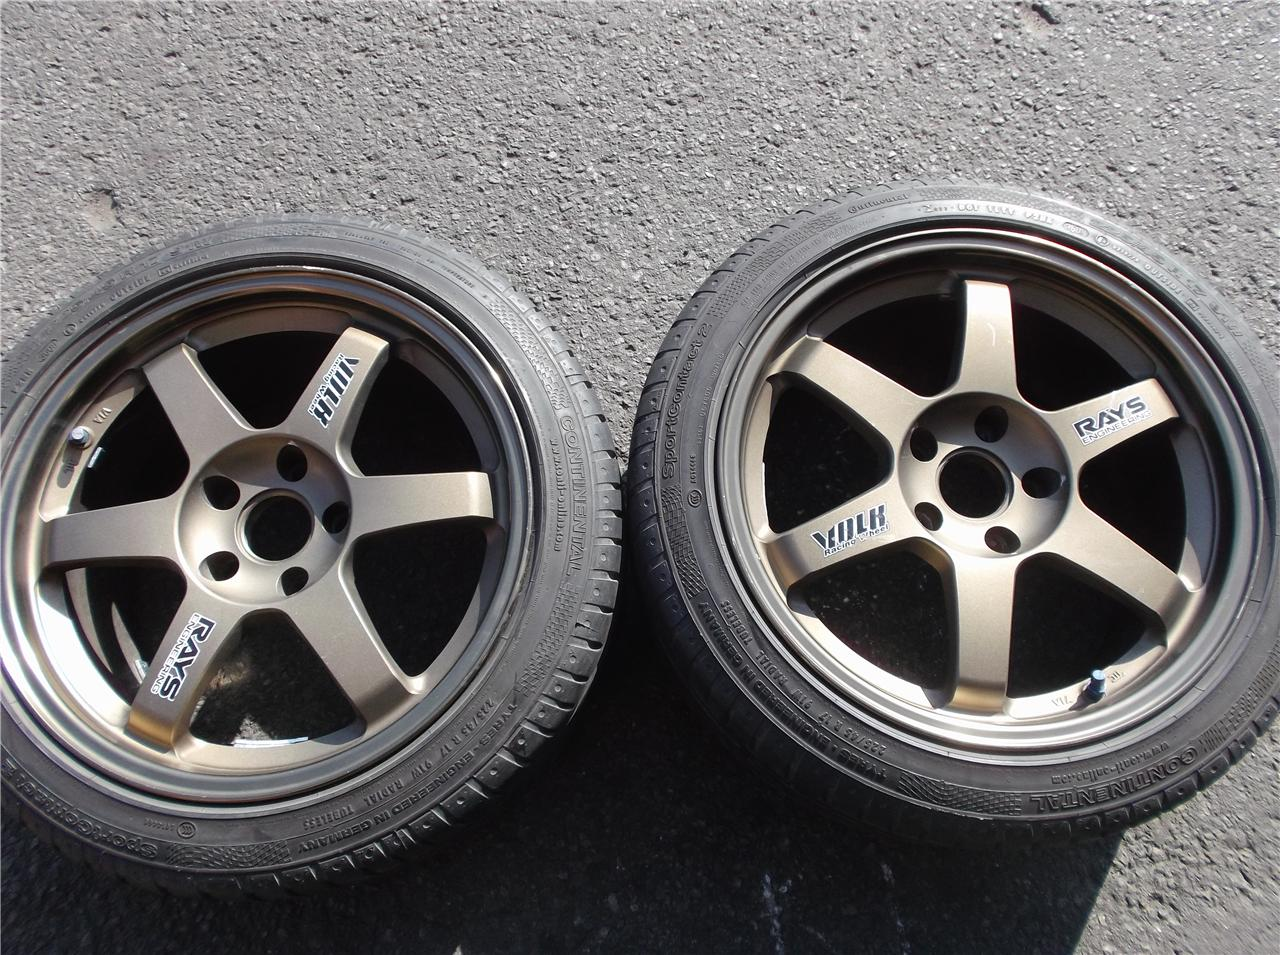 225 45r17 Tires >> jdm new shipment just arrived>>> lots of mags jdm mags....